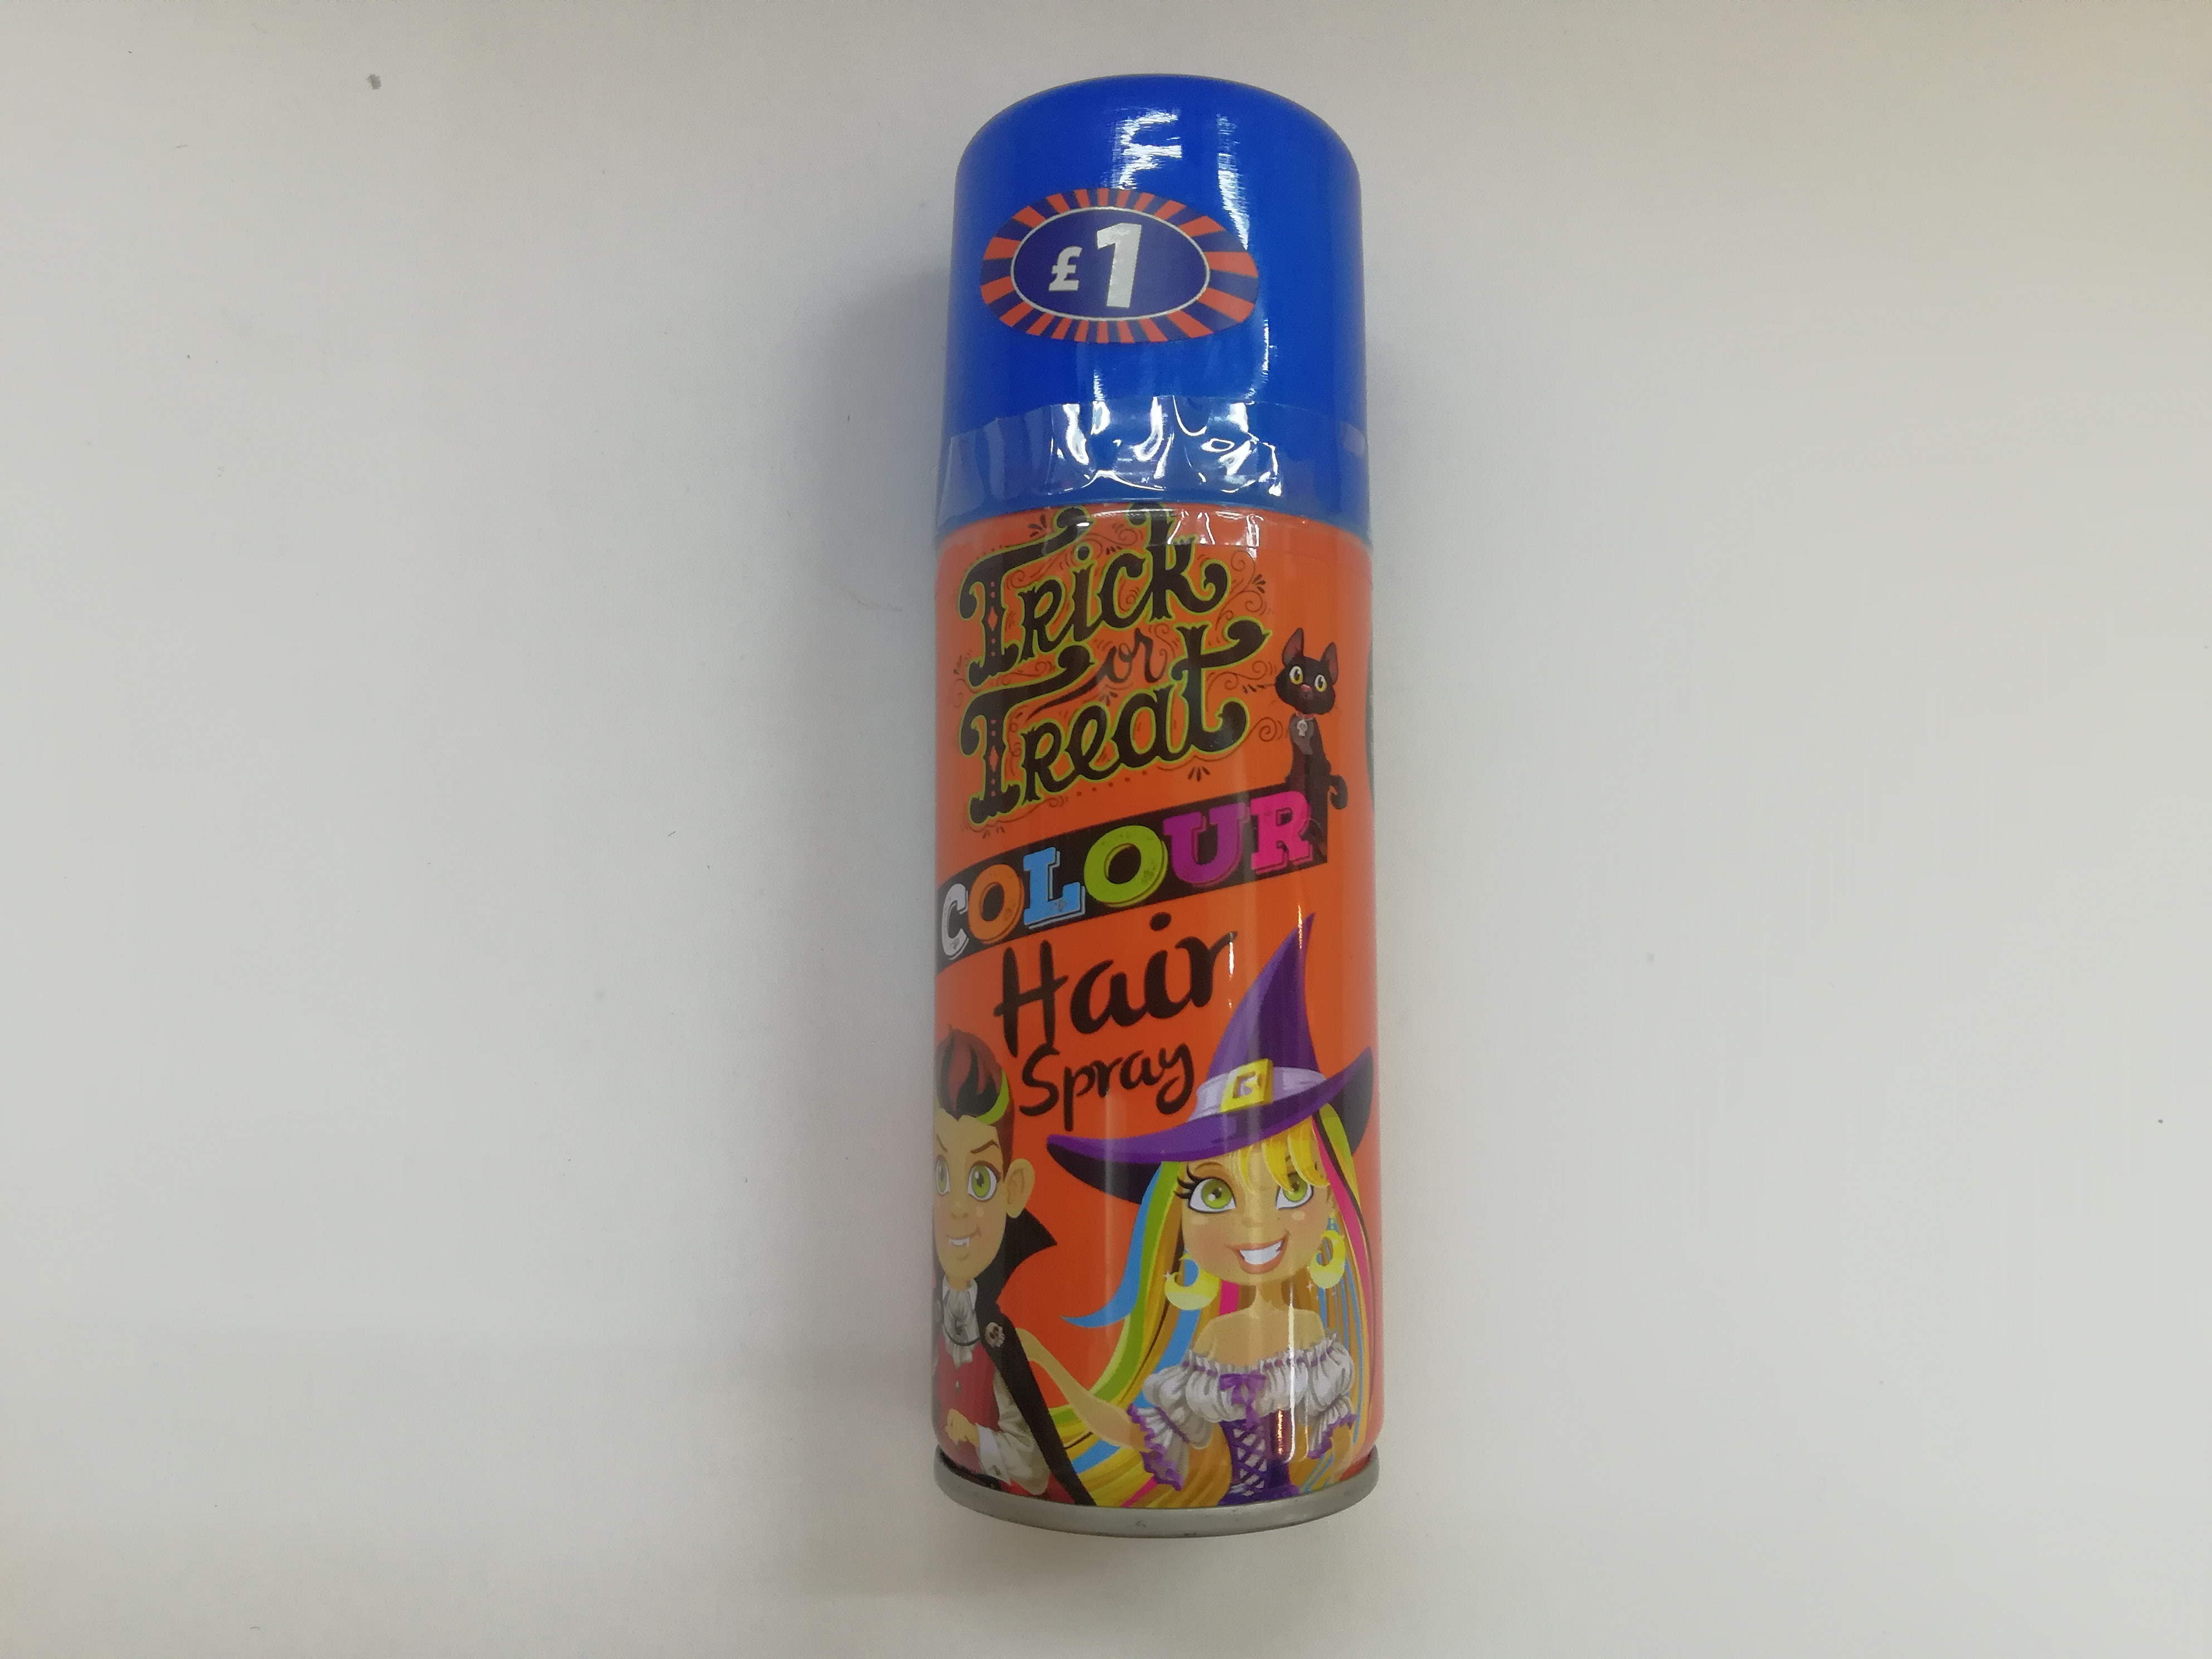 100ml Color Hair Spray For UK Market